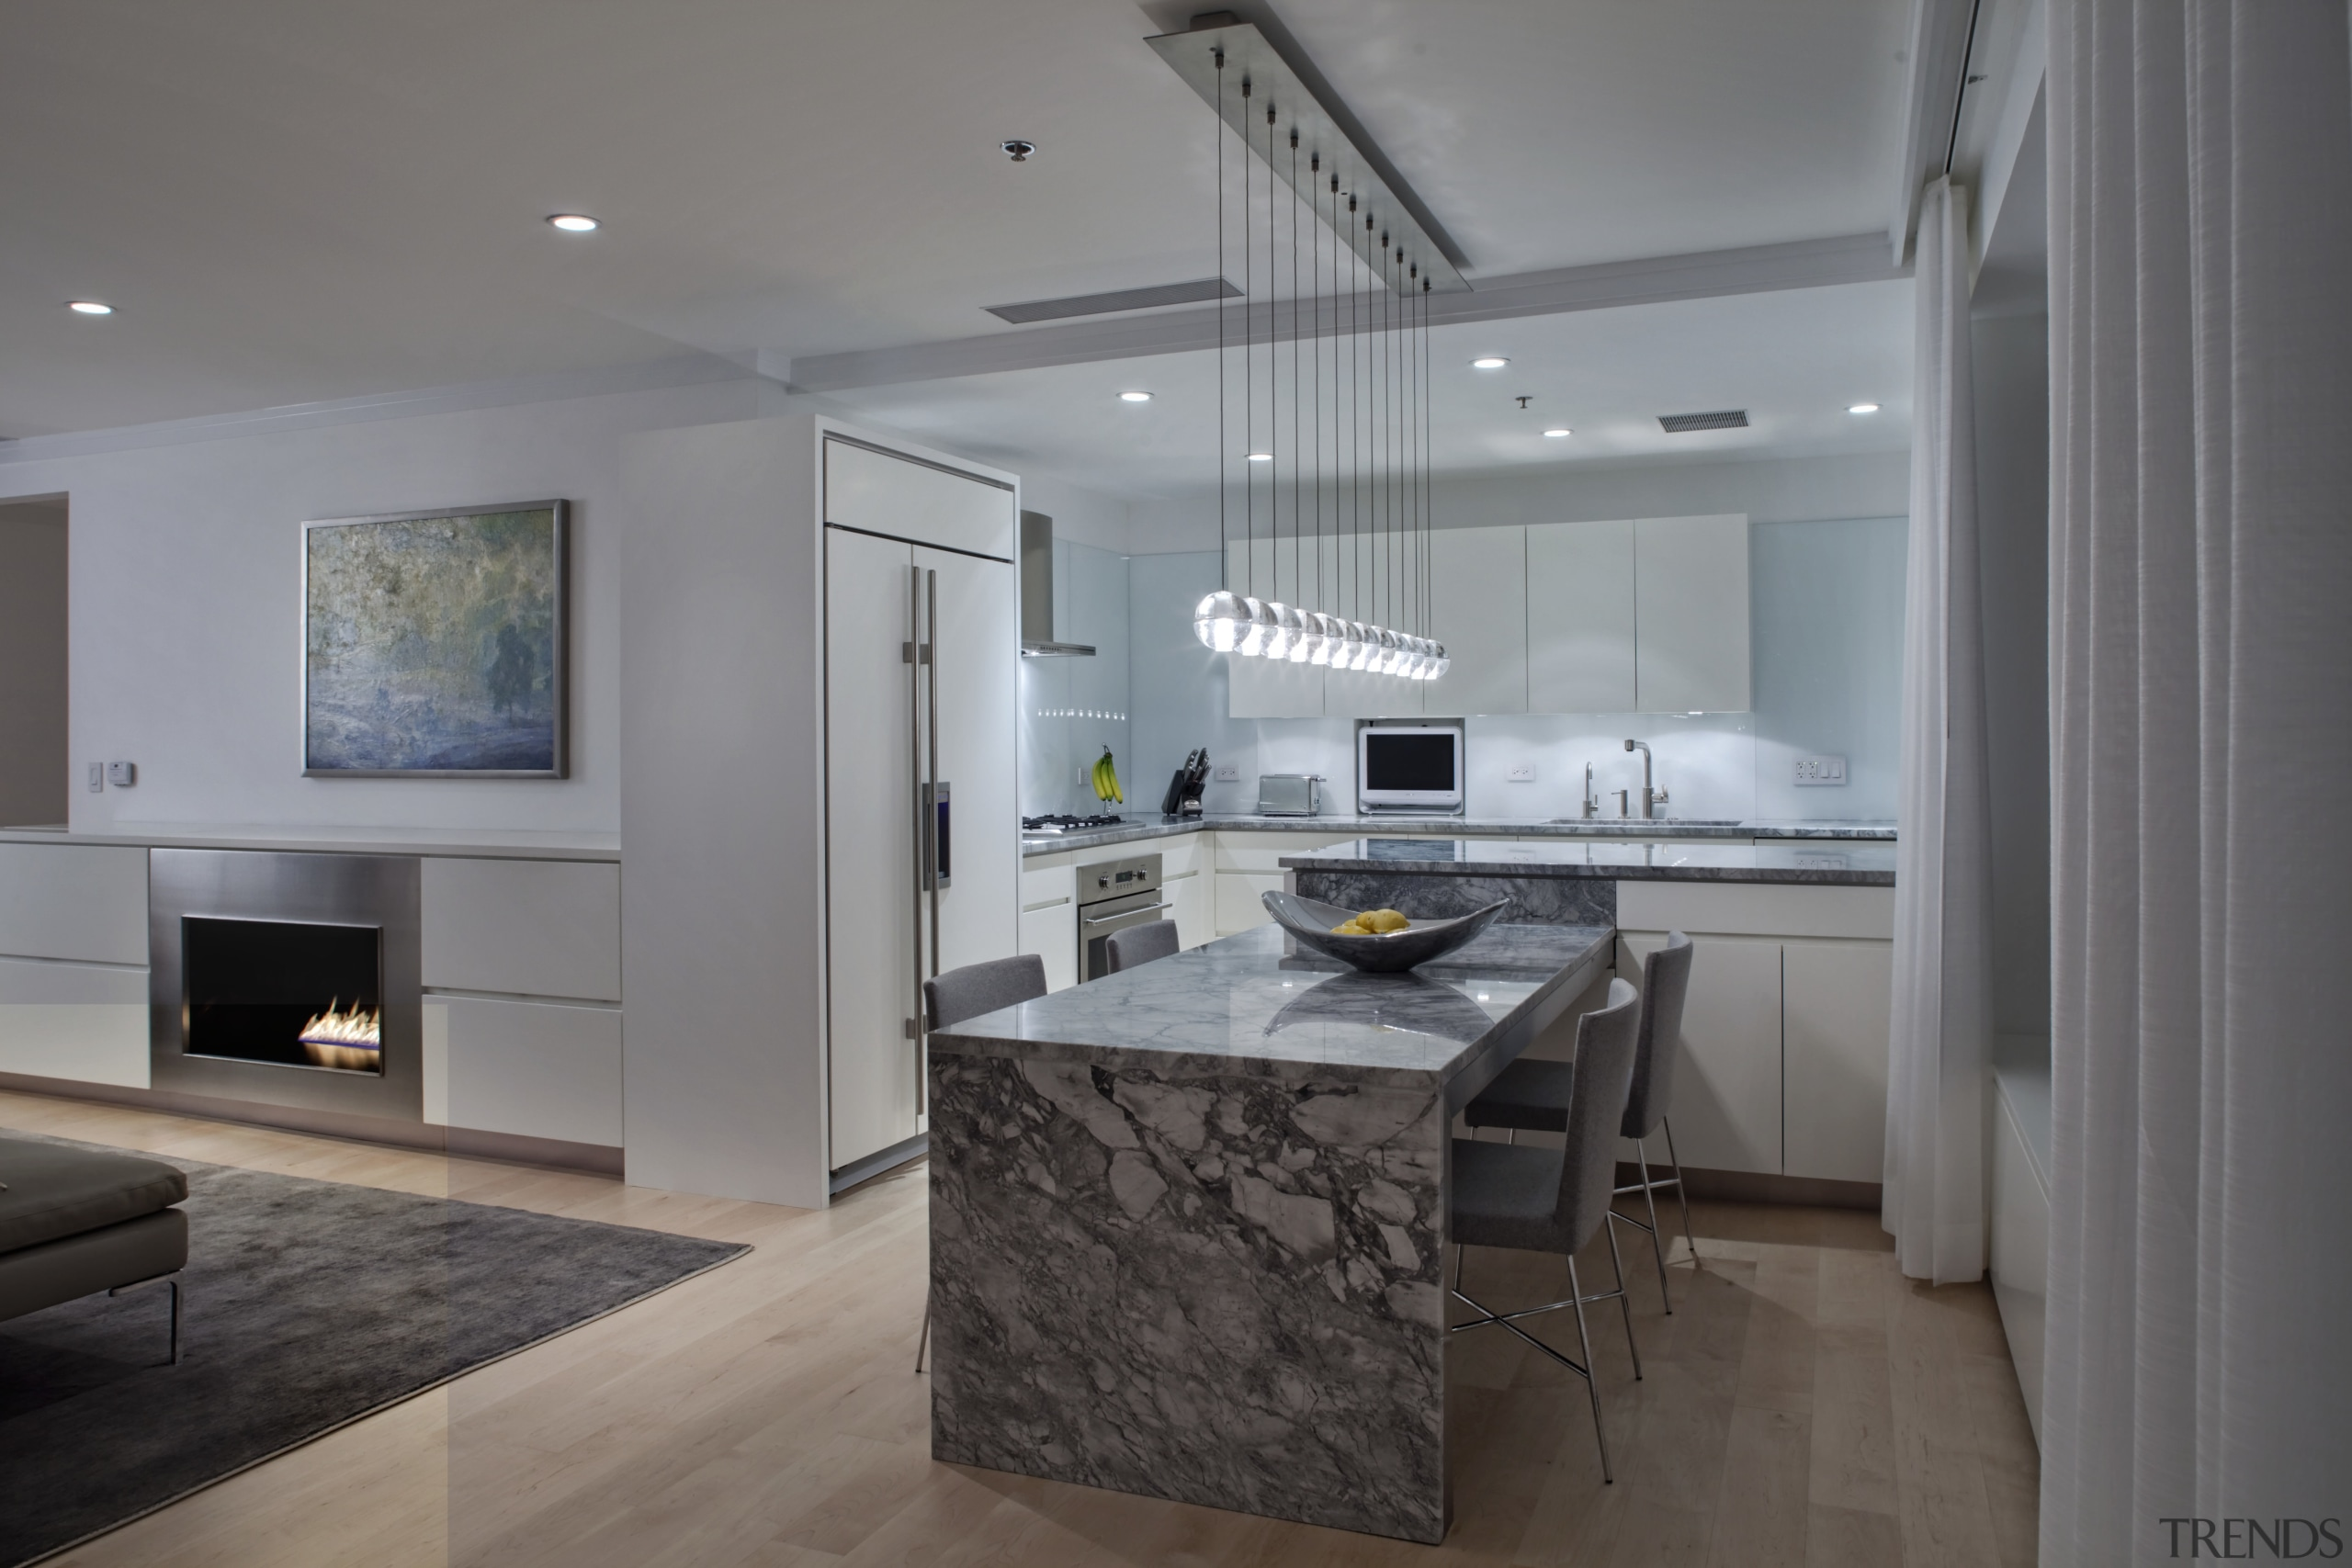 View of kitchen designed by Massey Hoffman Architects countertop, floor, home appliance, interior design, kitchen, living room, real estate, gray